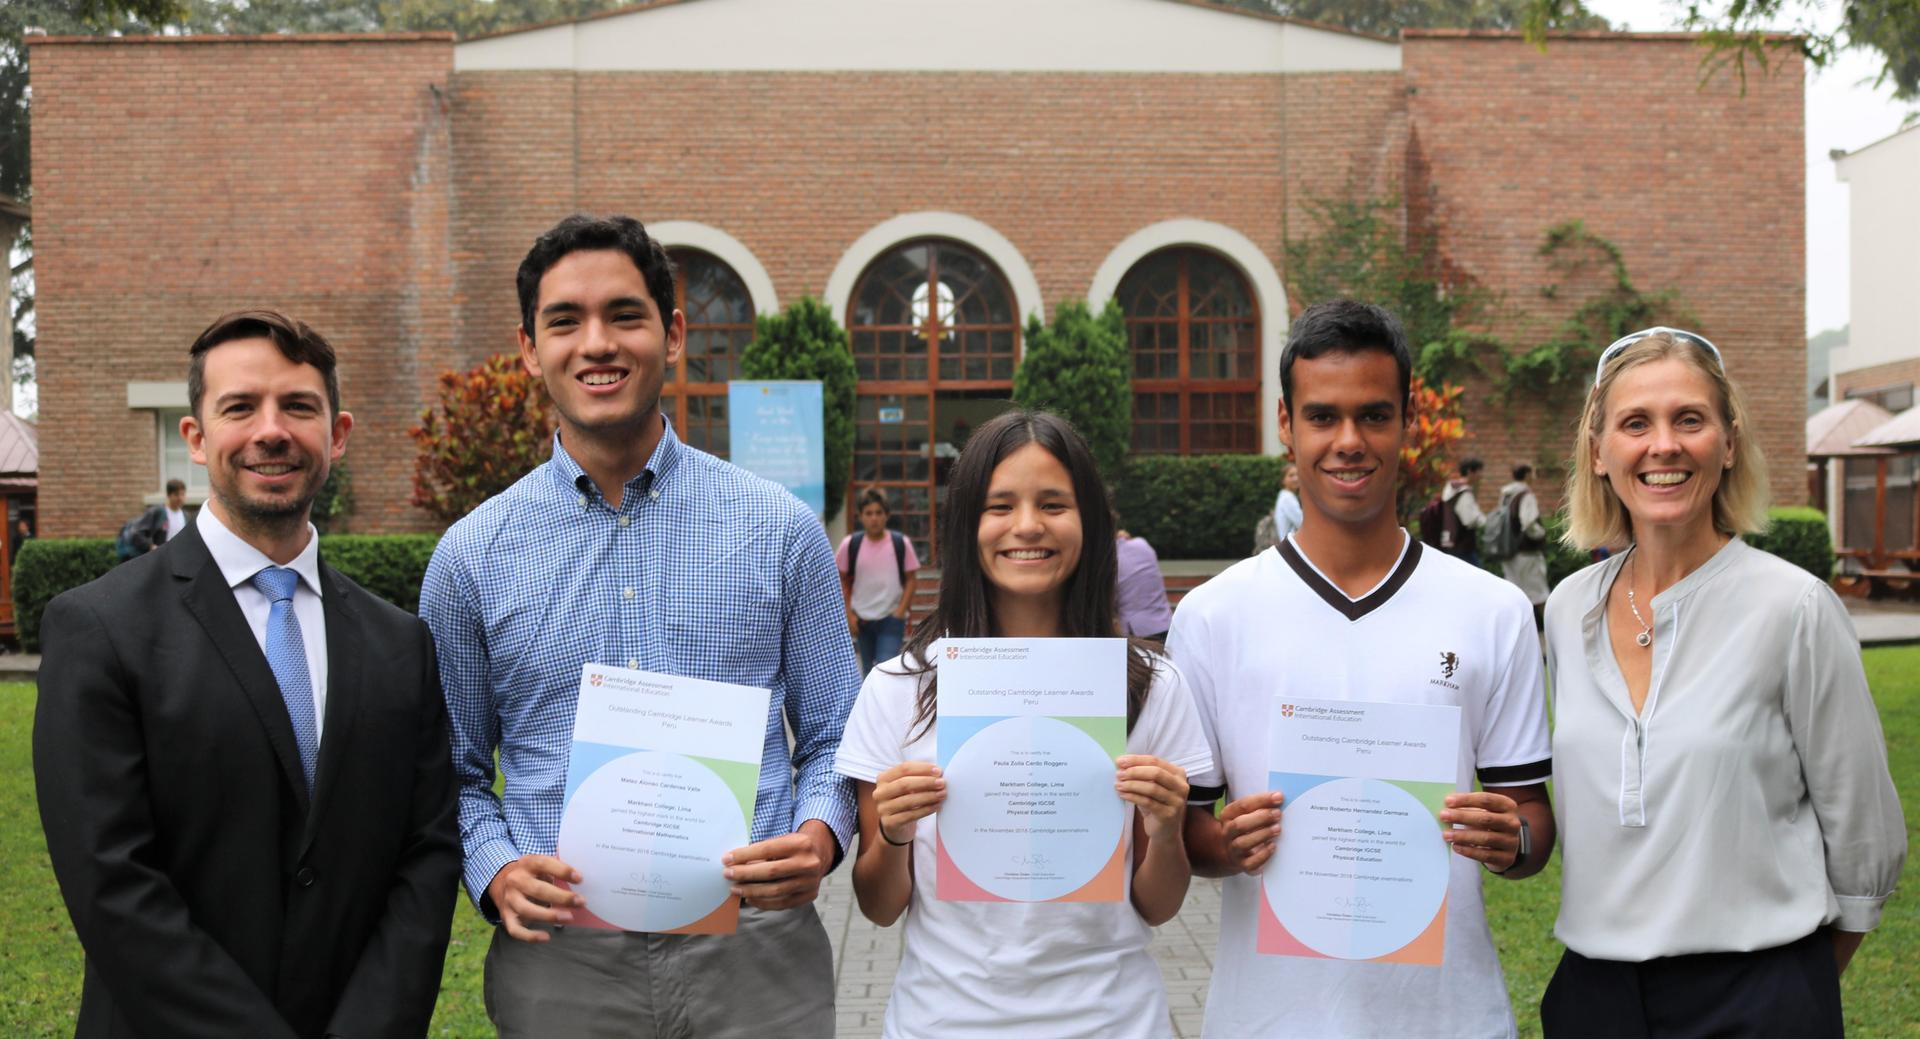 Students win Top of the World Award